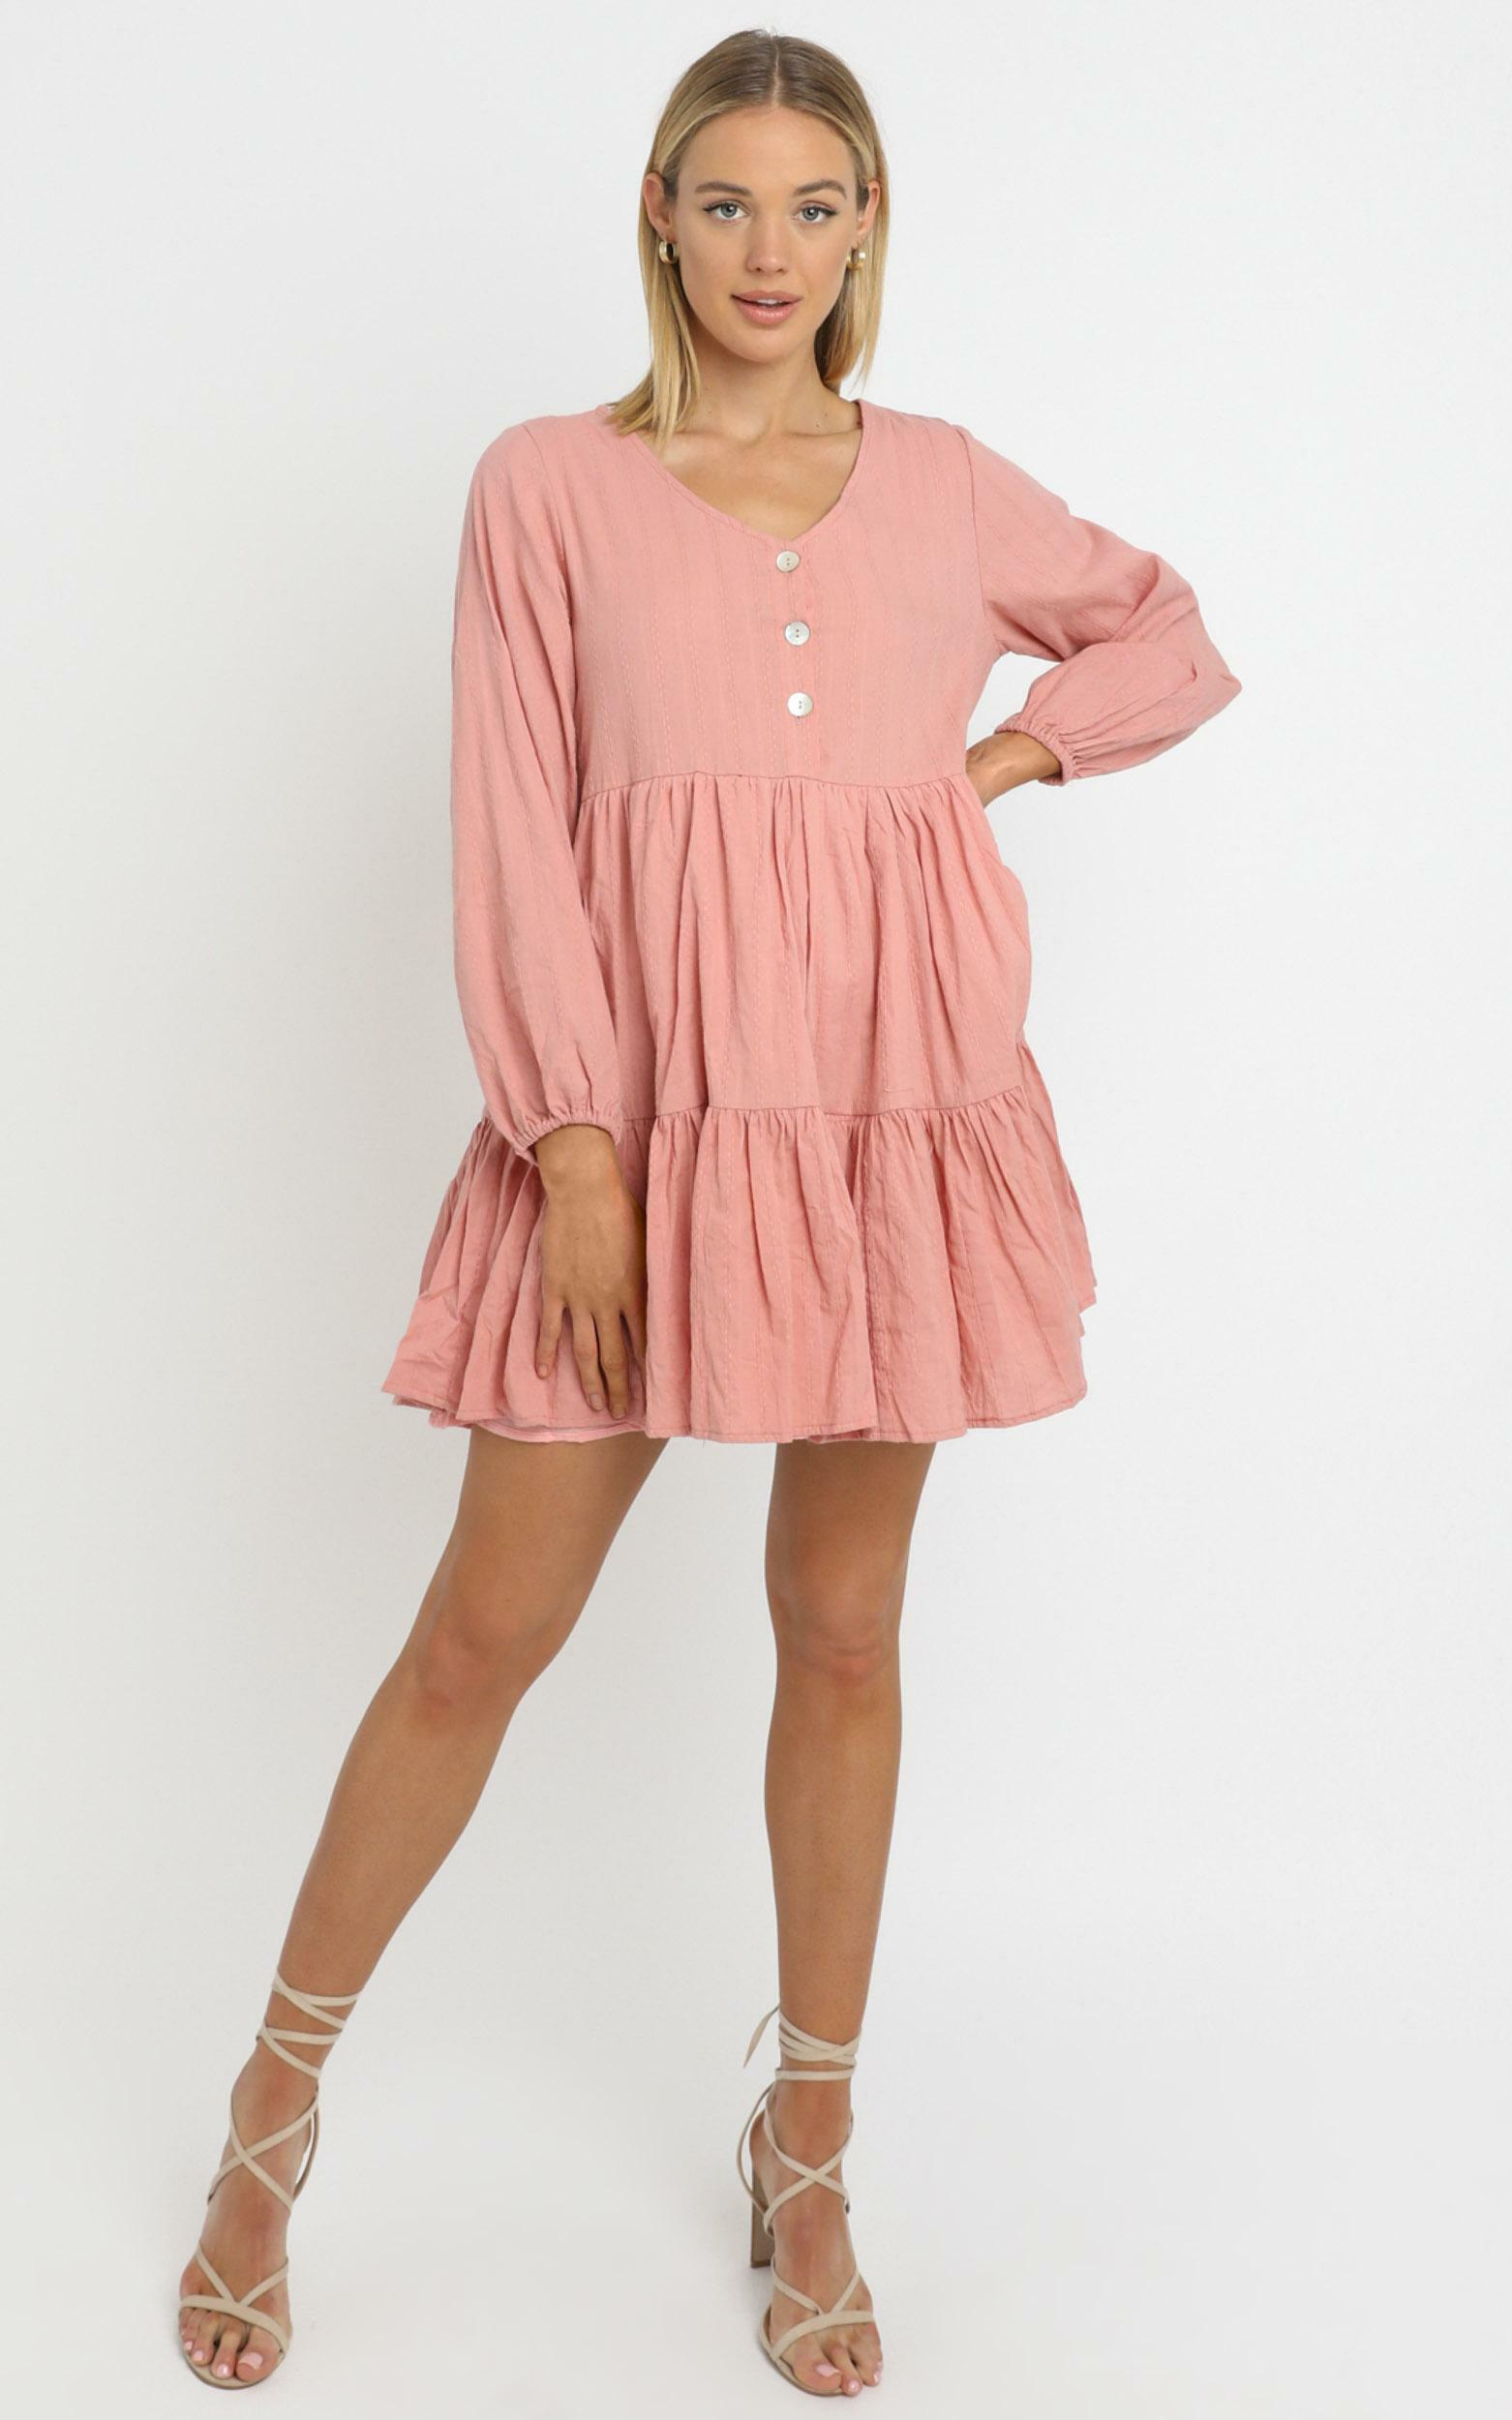 Chester Dress in Pink - 14 (XL), Pink, hi-res image number null